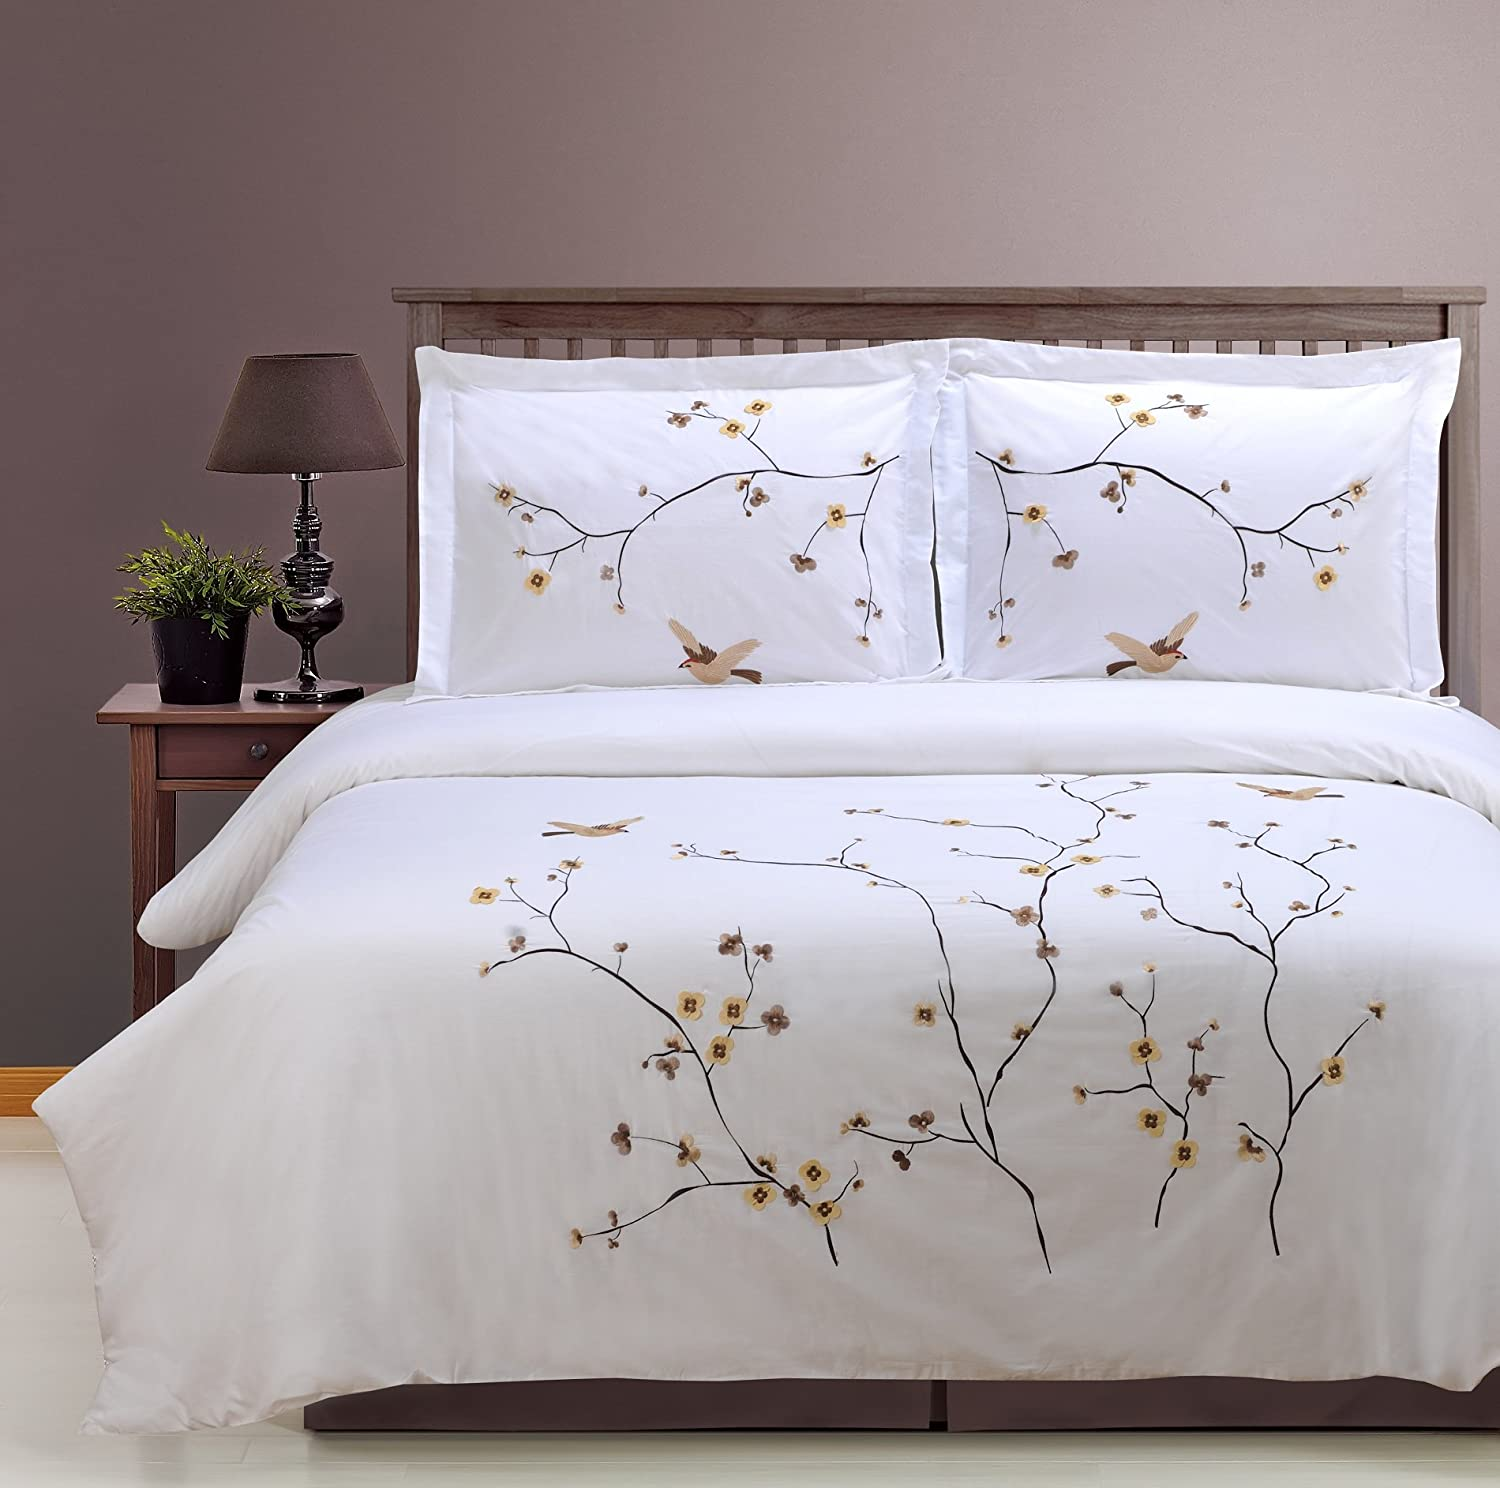 SUPERIOR Blossom Embroidered Floral Cover Duvet Mail order cheap Set Long-Staple Genuine Free Shipping